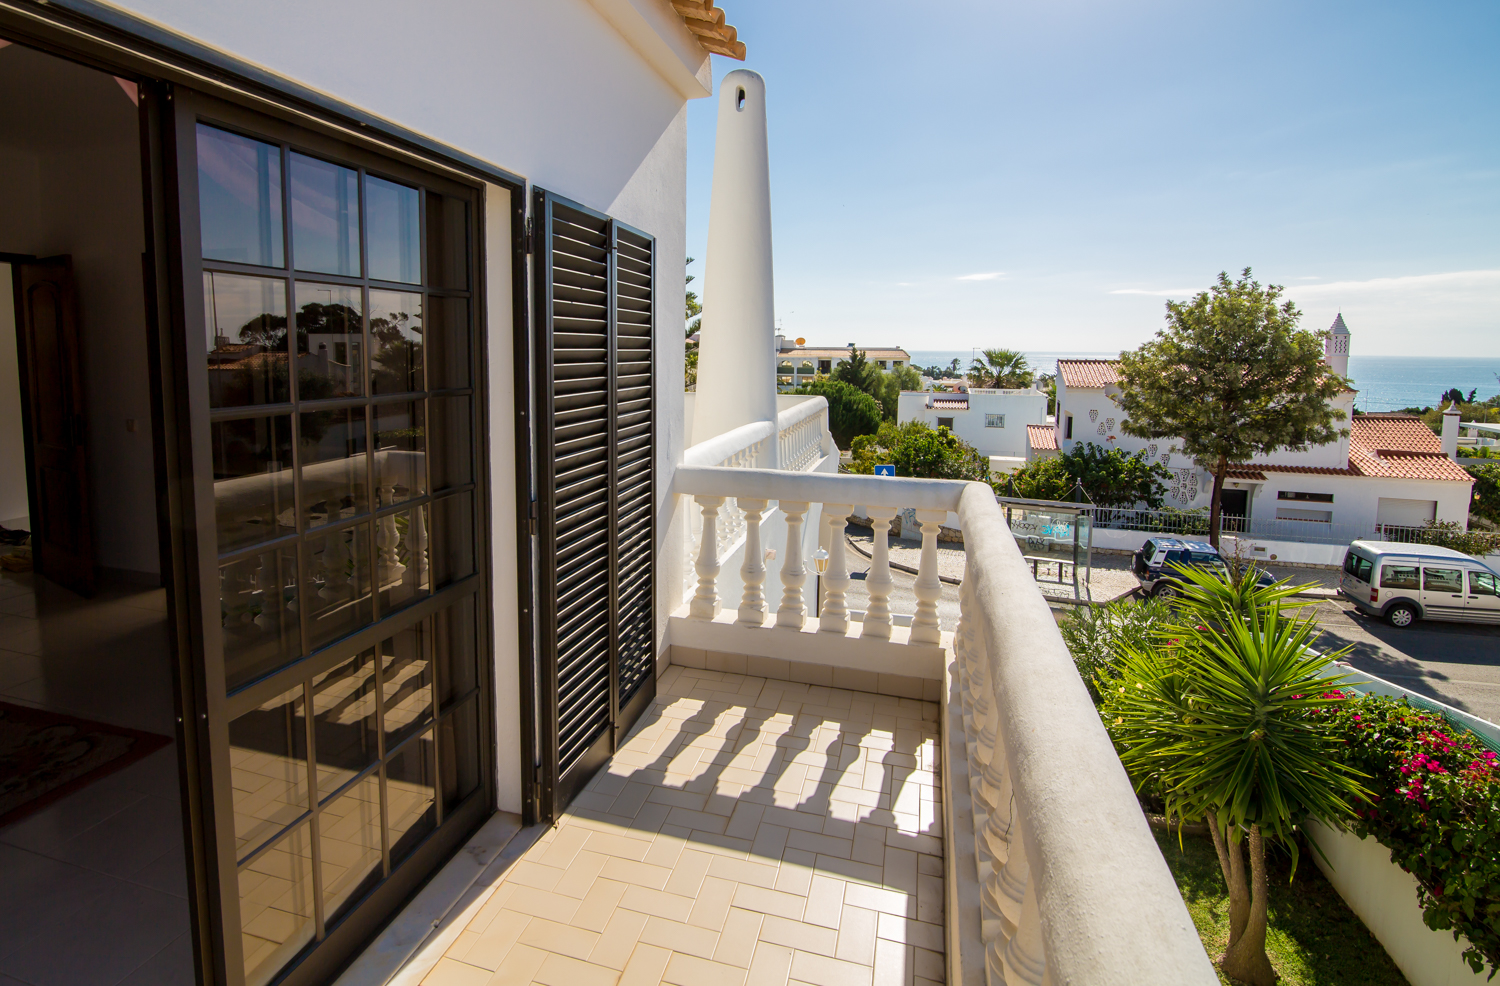 2nd floor Bedroom with private terrace, commanding superb resort and sea views.